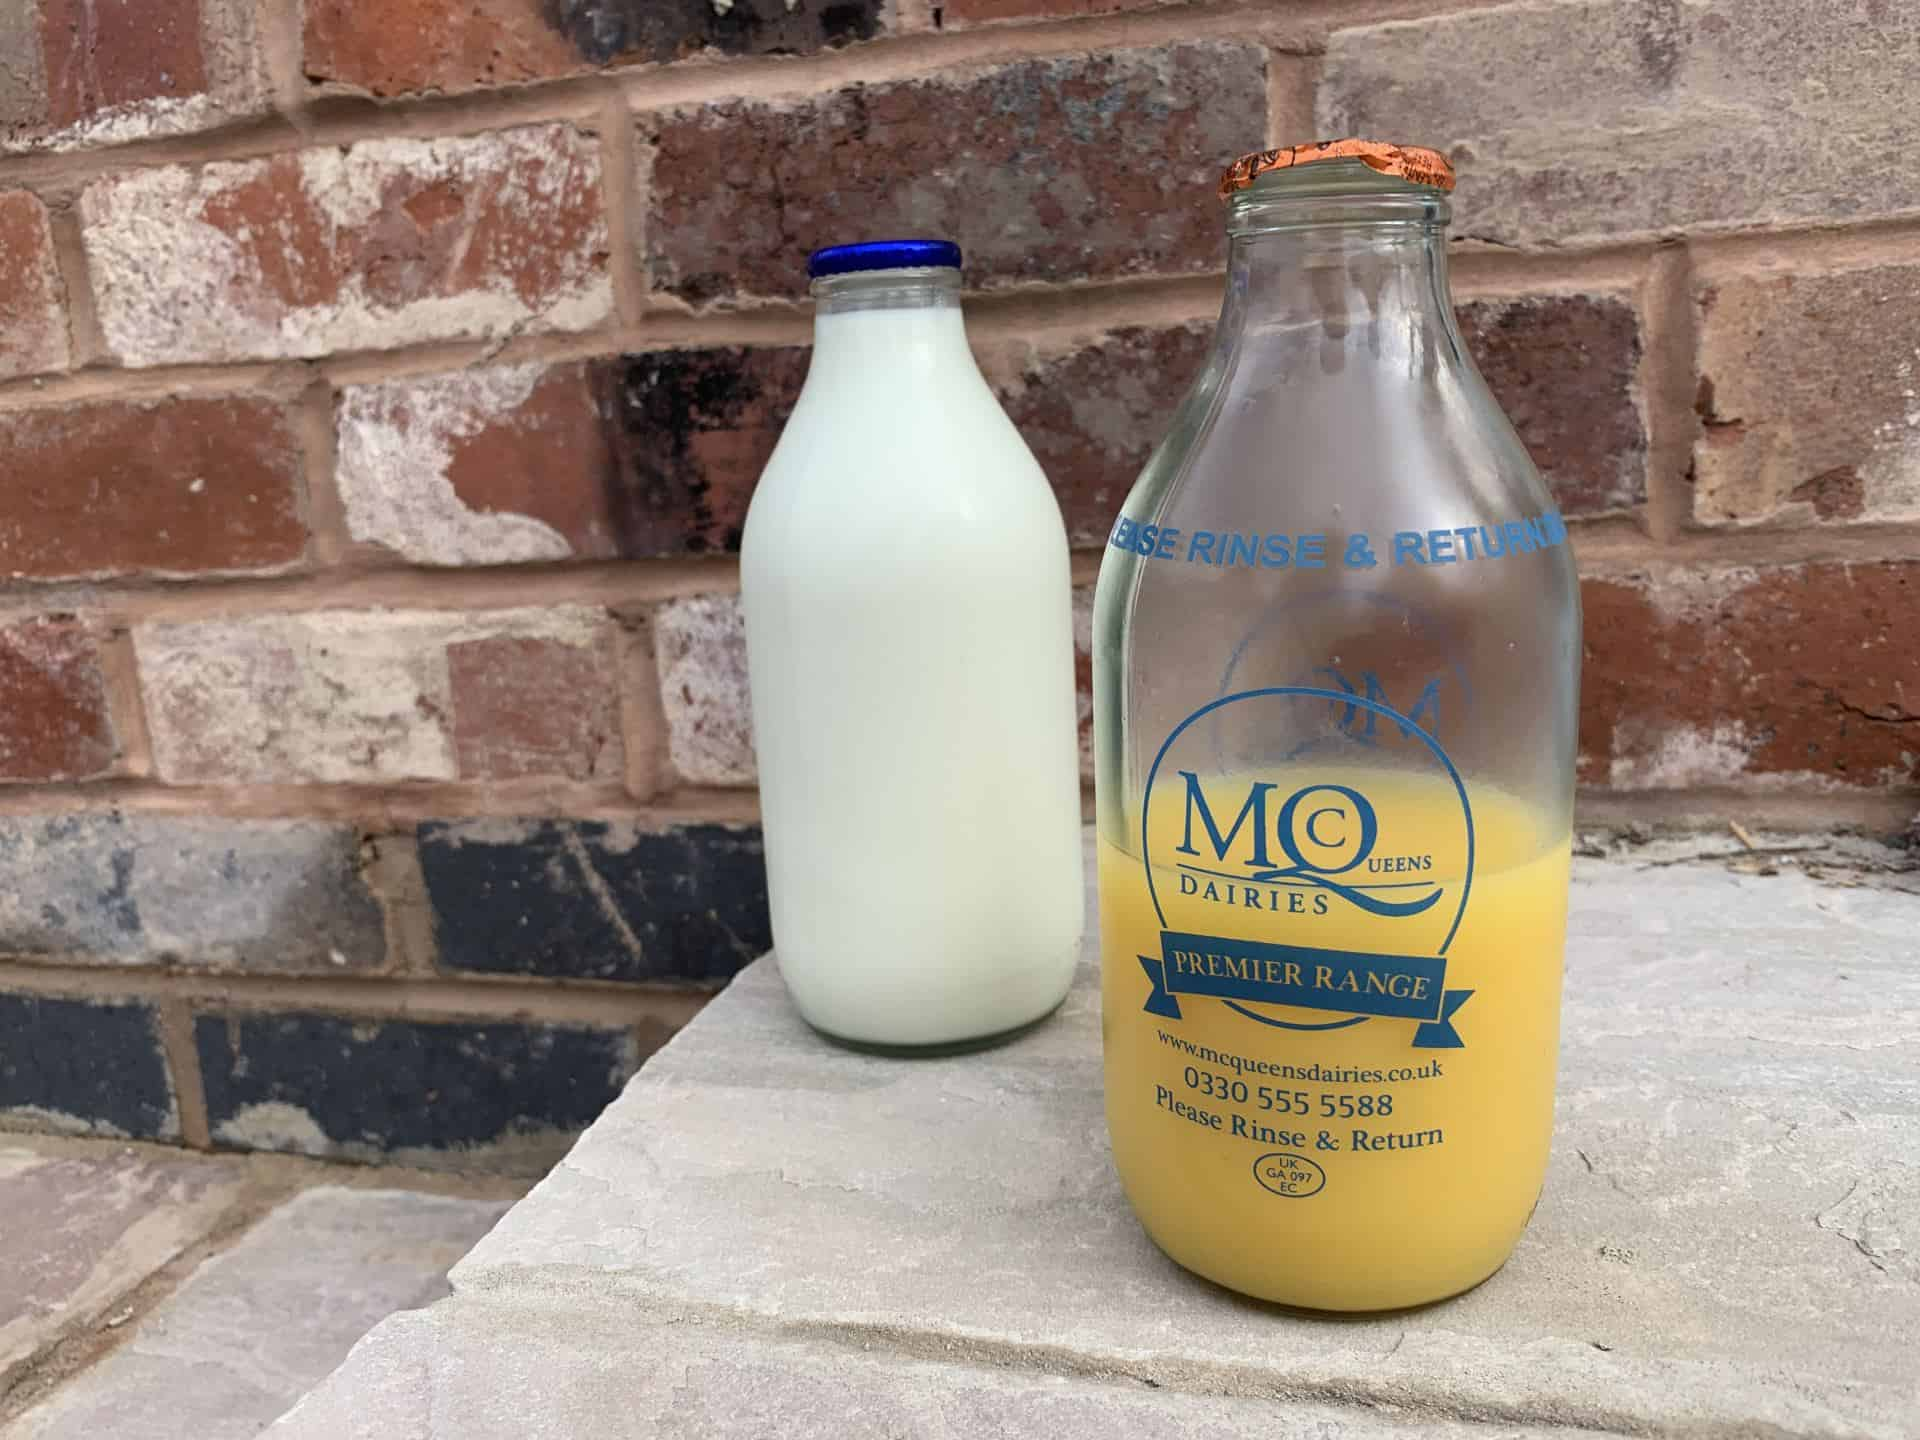 Bottled milk and orange on a doorstep